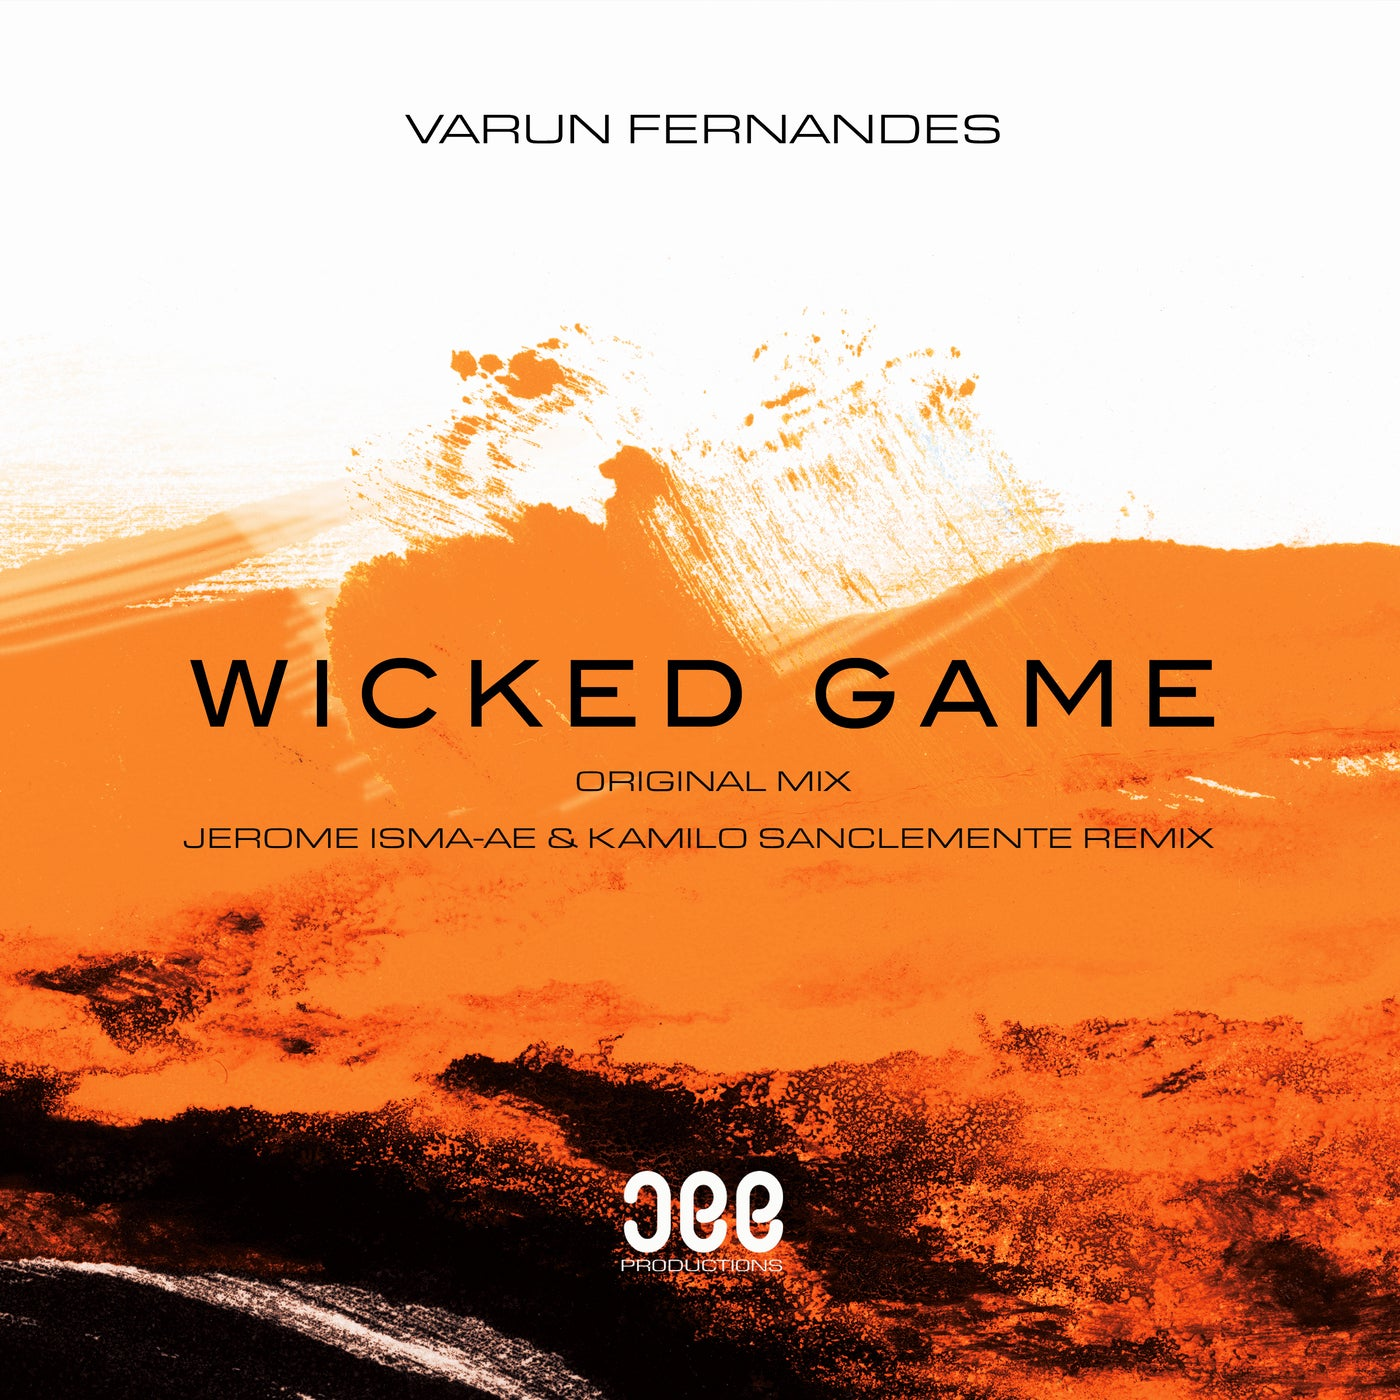 Wicked Game (Jerome Isma-Ae & Kamilo Sanclemente Remix)